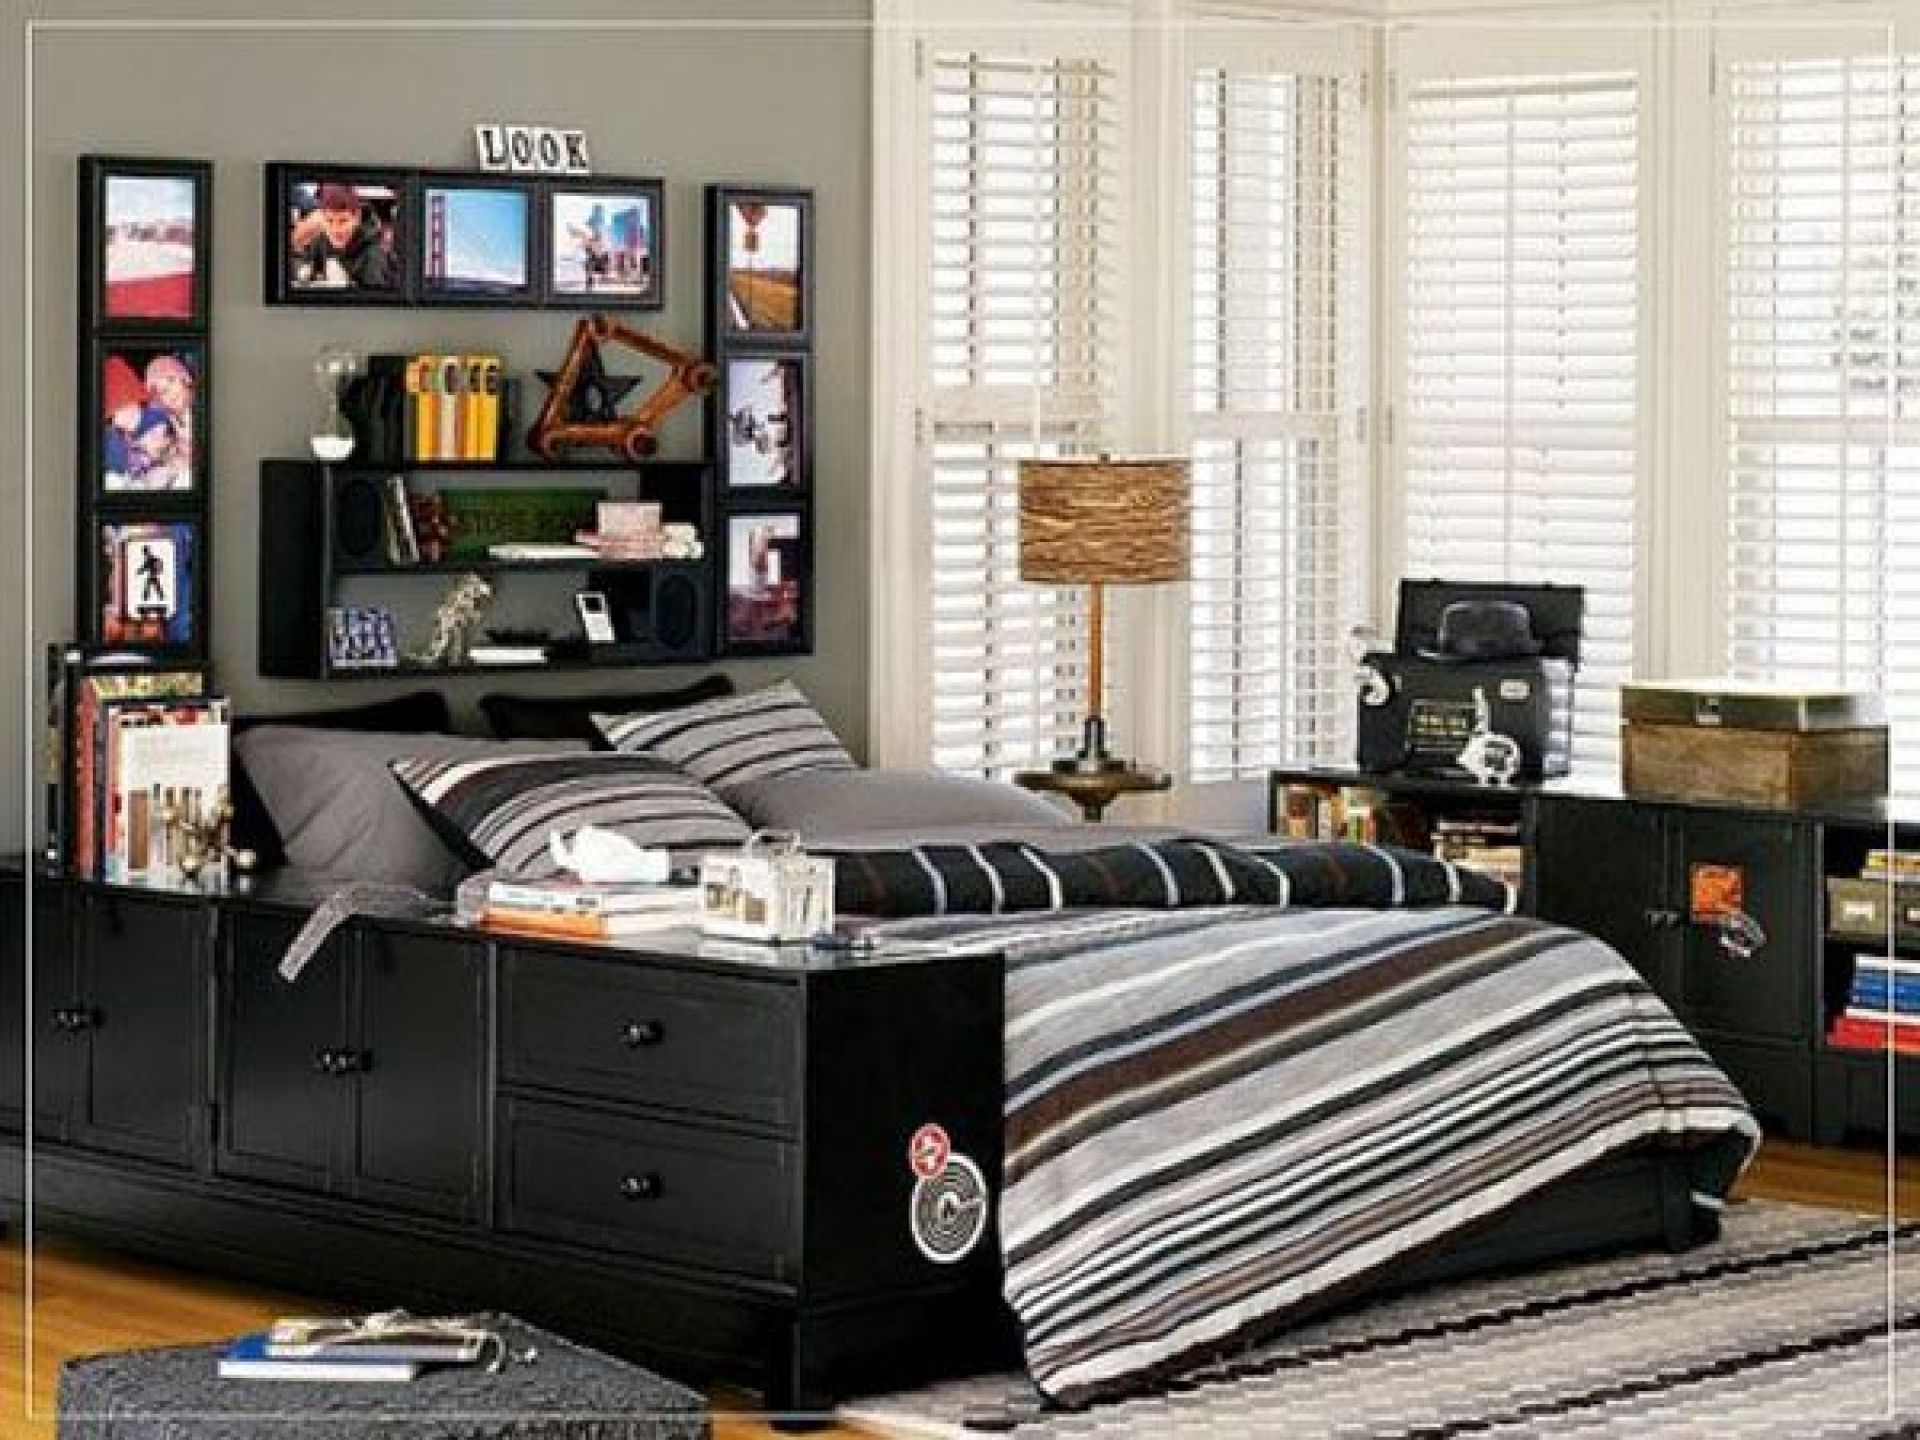 Cool Room Ideas For Teenagers Classy Bedroom Ideas For Teenage Guys With Small Rooms  Google Search . Design Inspiration